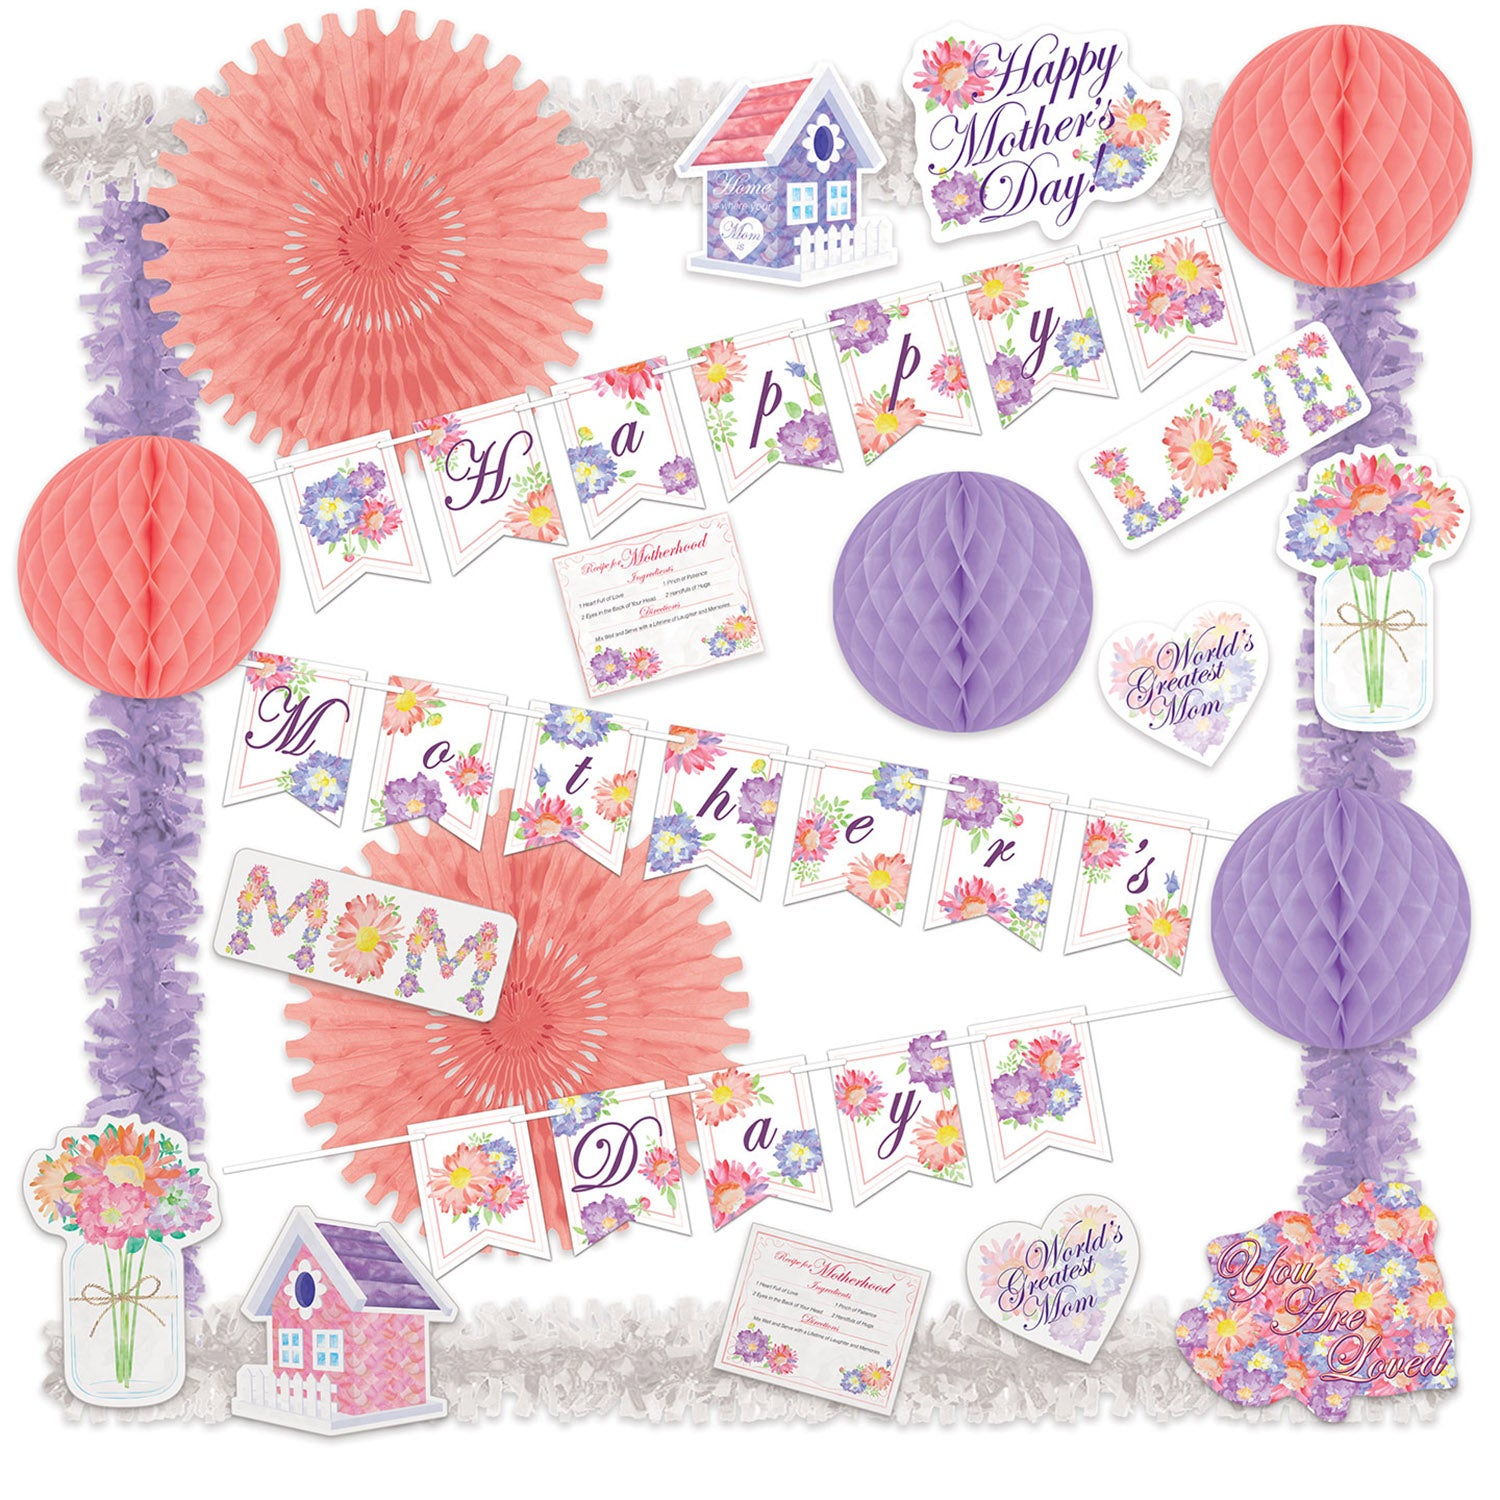 Mother's Day Decorating Kit by Beistle - Mother's Day Theme Decorations